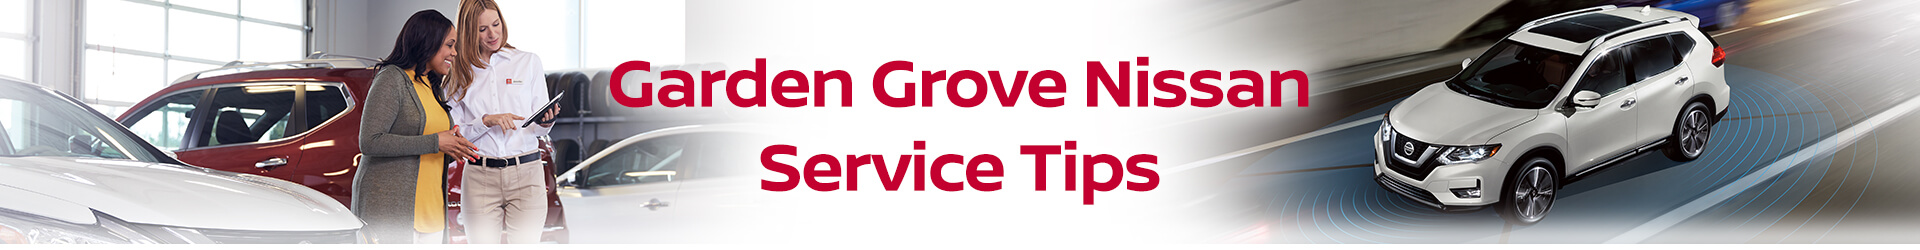 Service Tips